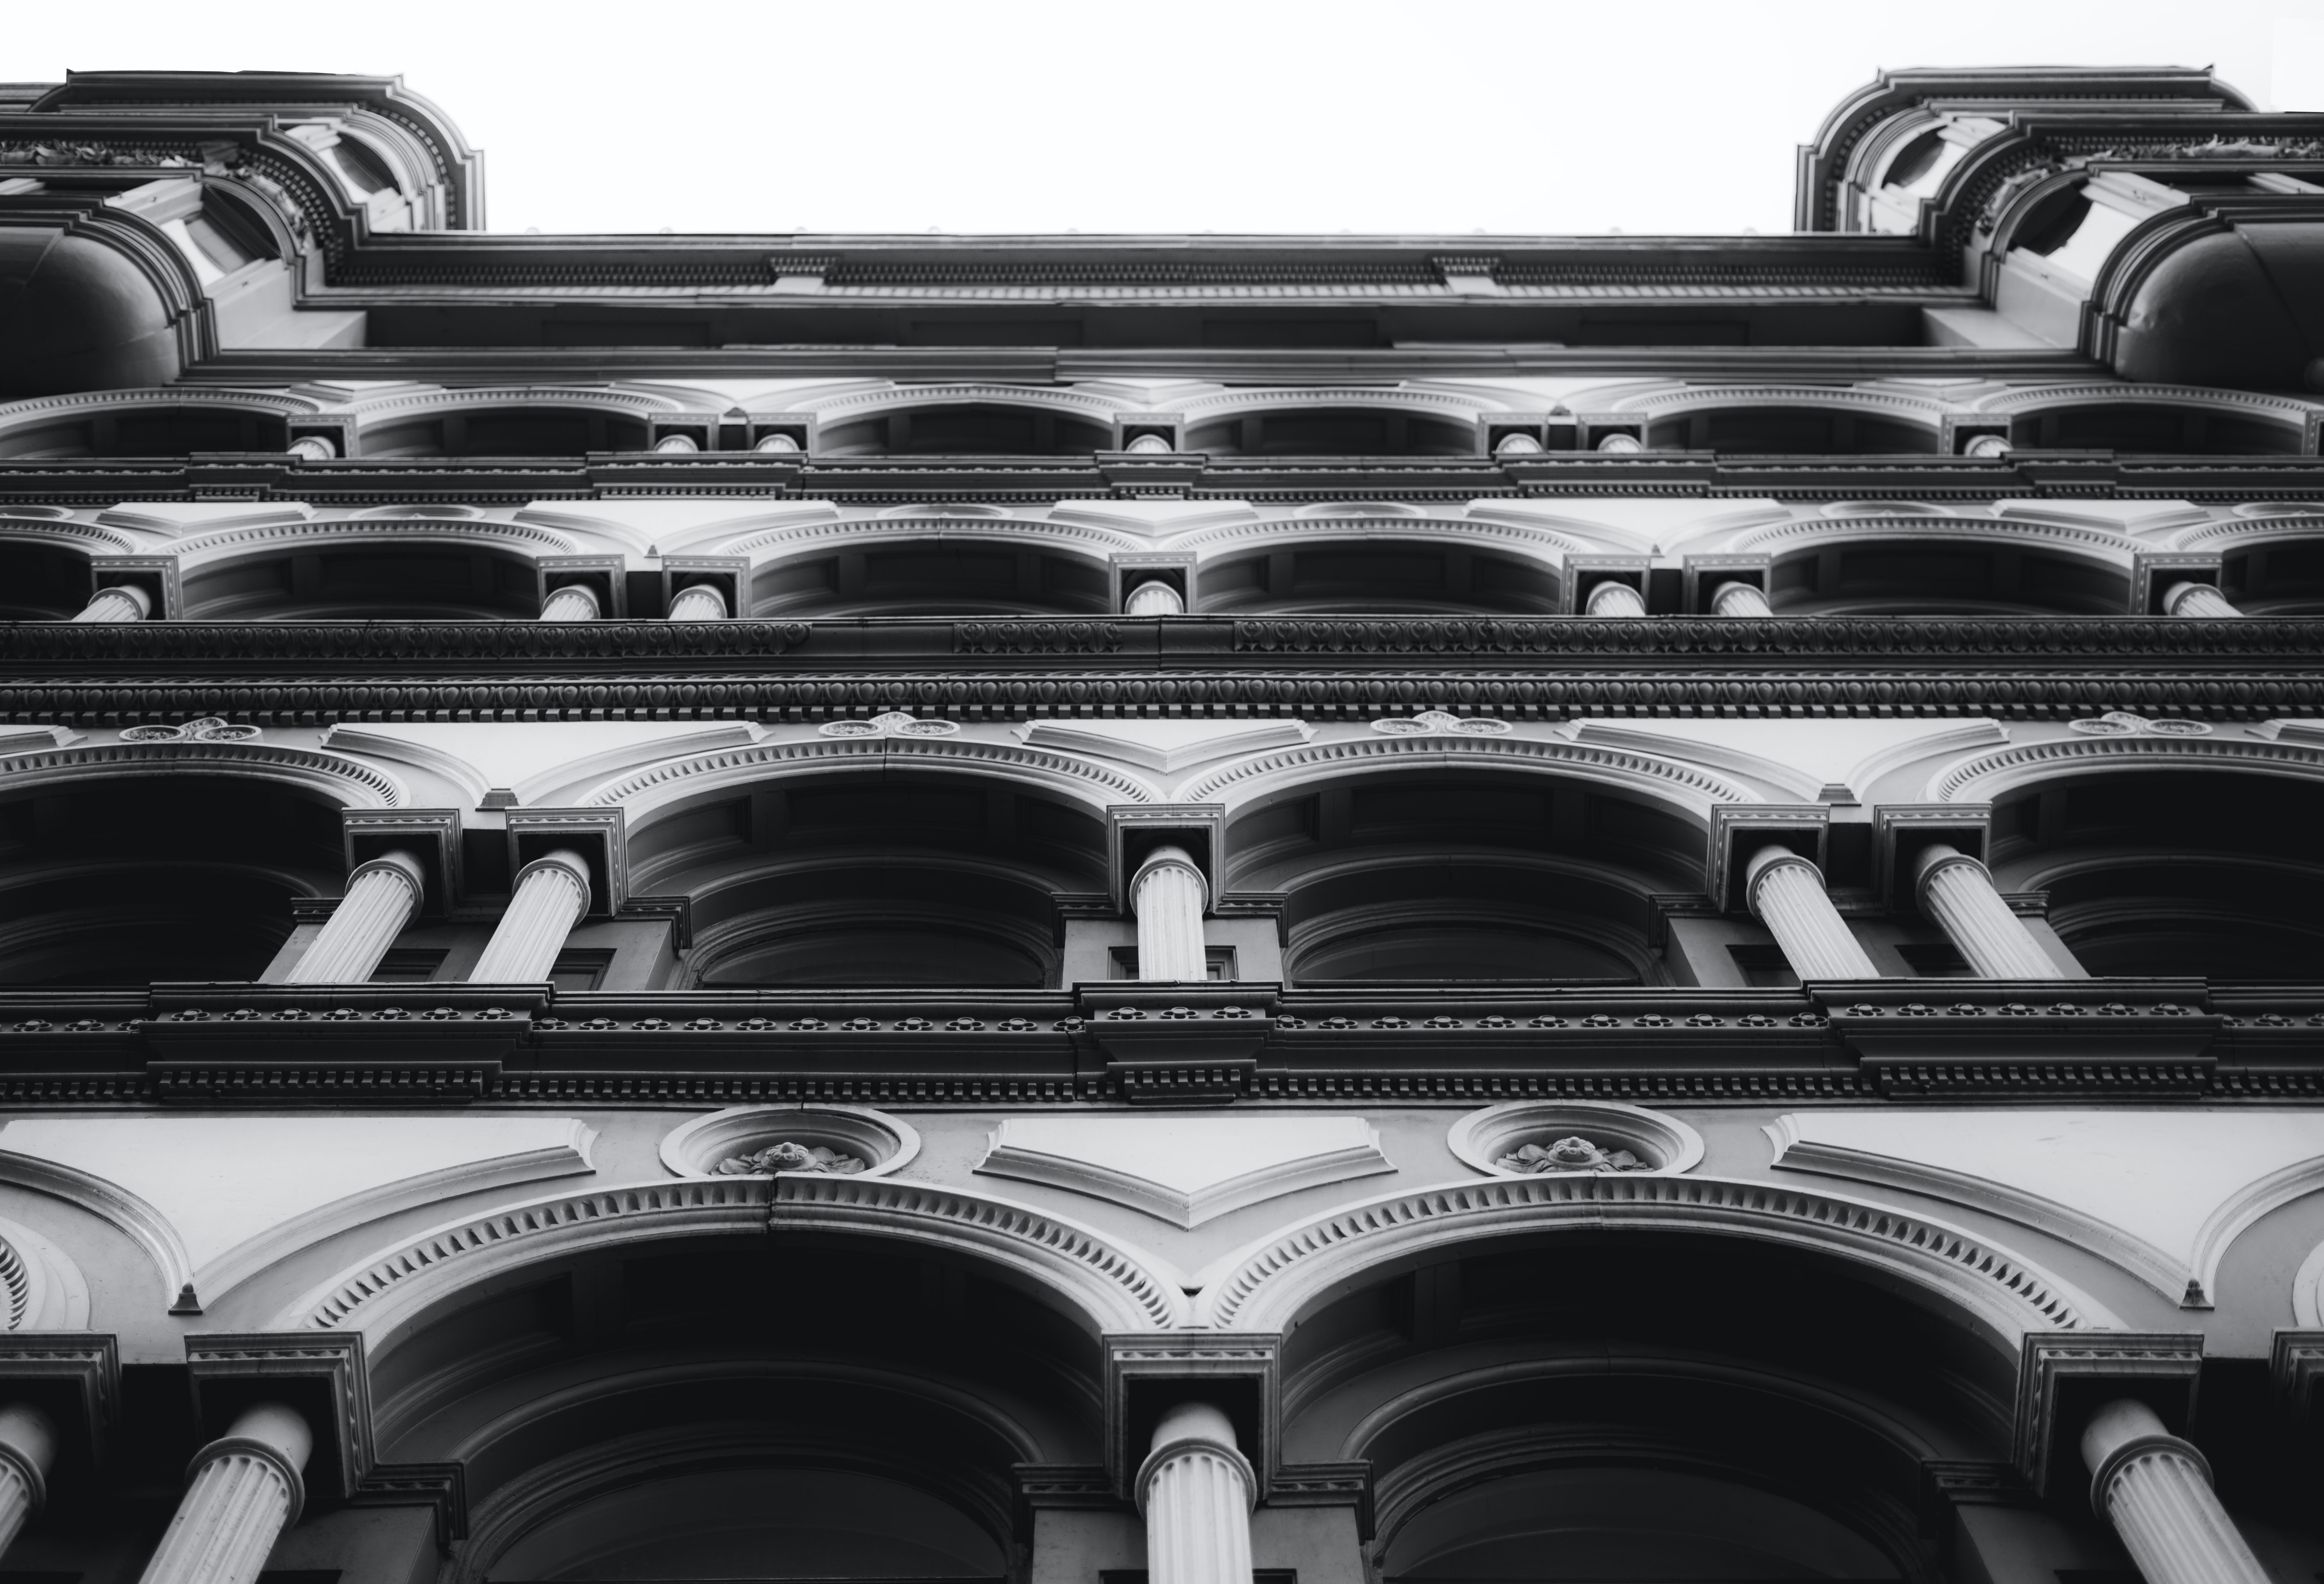 low angle view of baroque building in grayscale photo